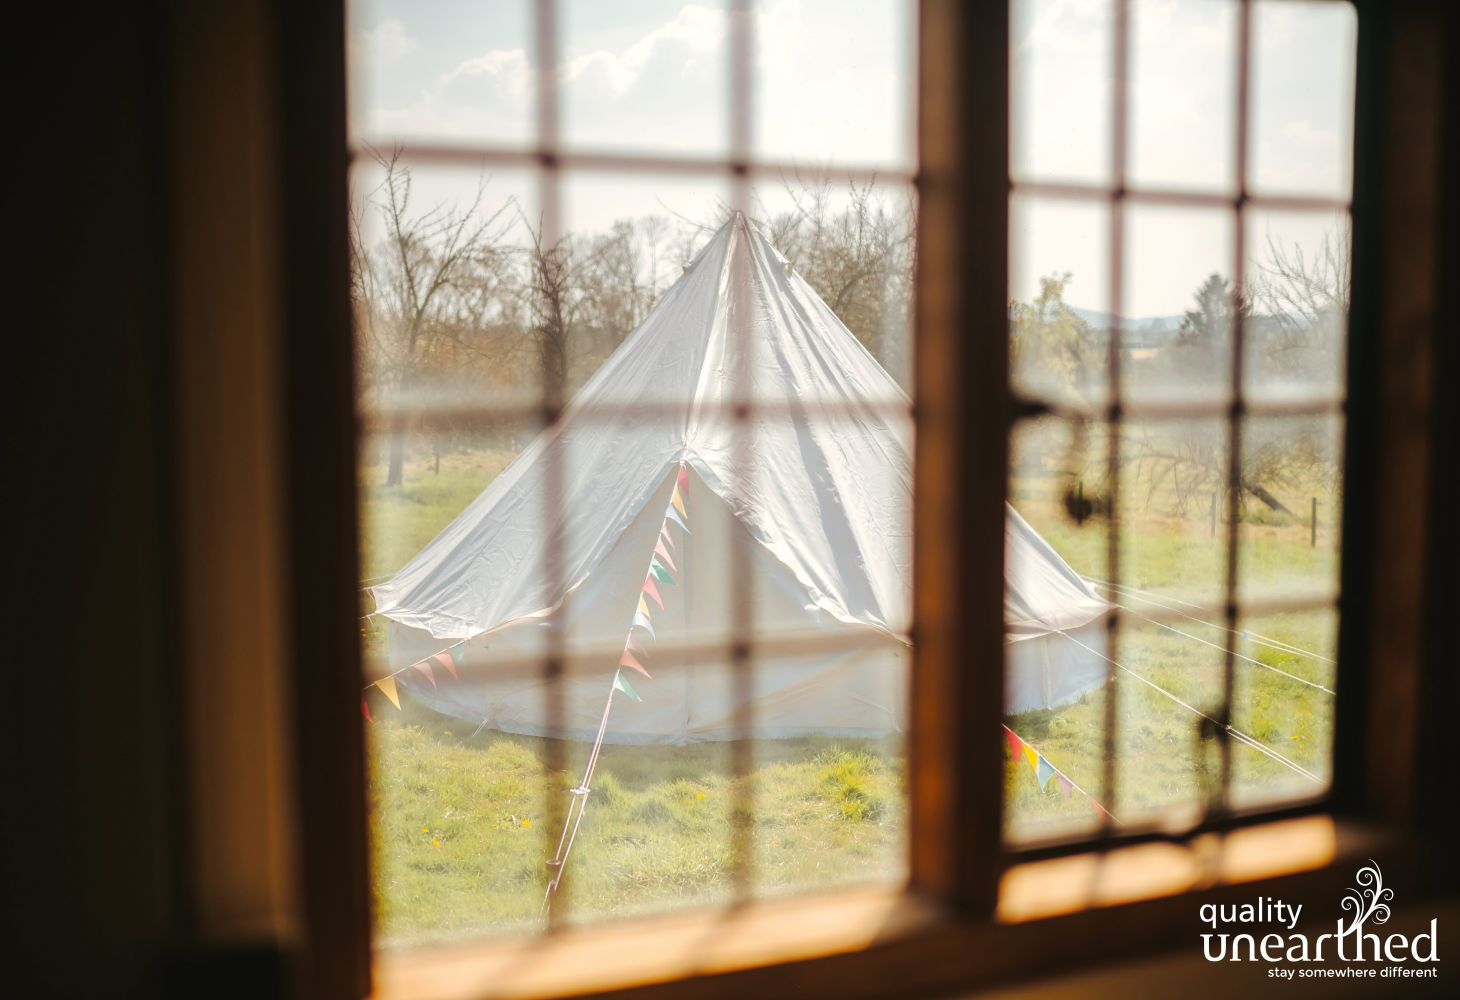 River Orchard Family Retreat in Herefordshire